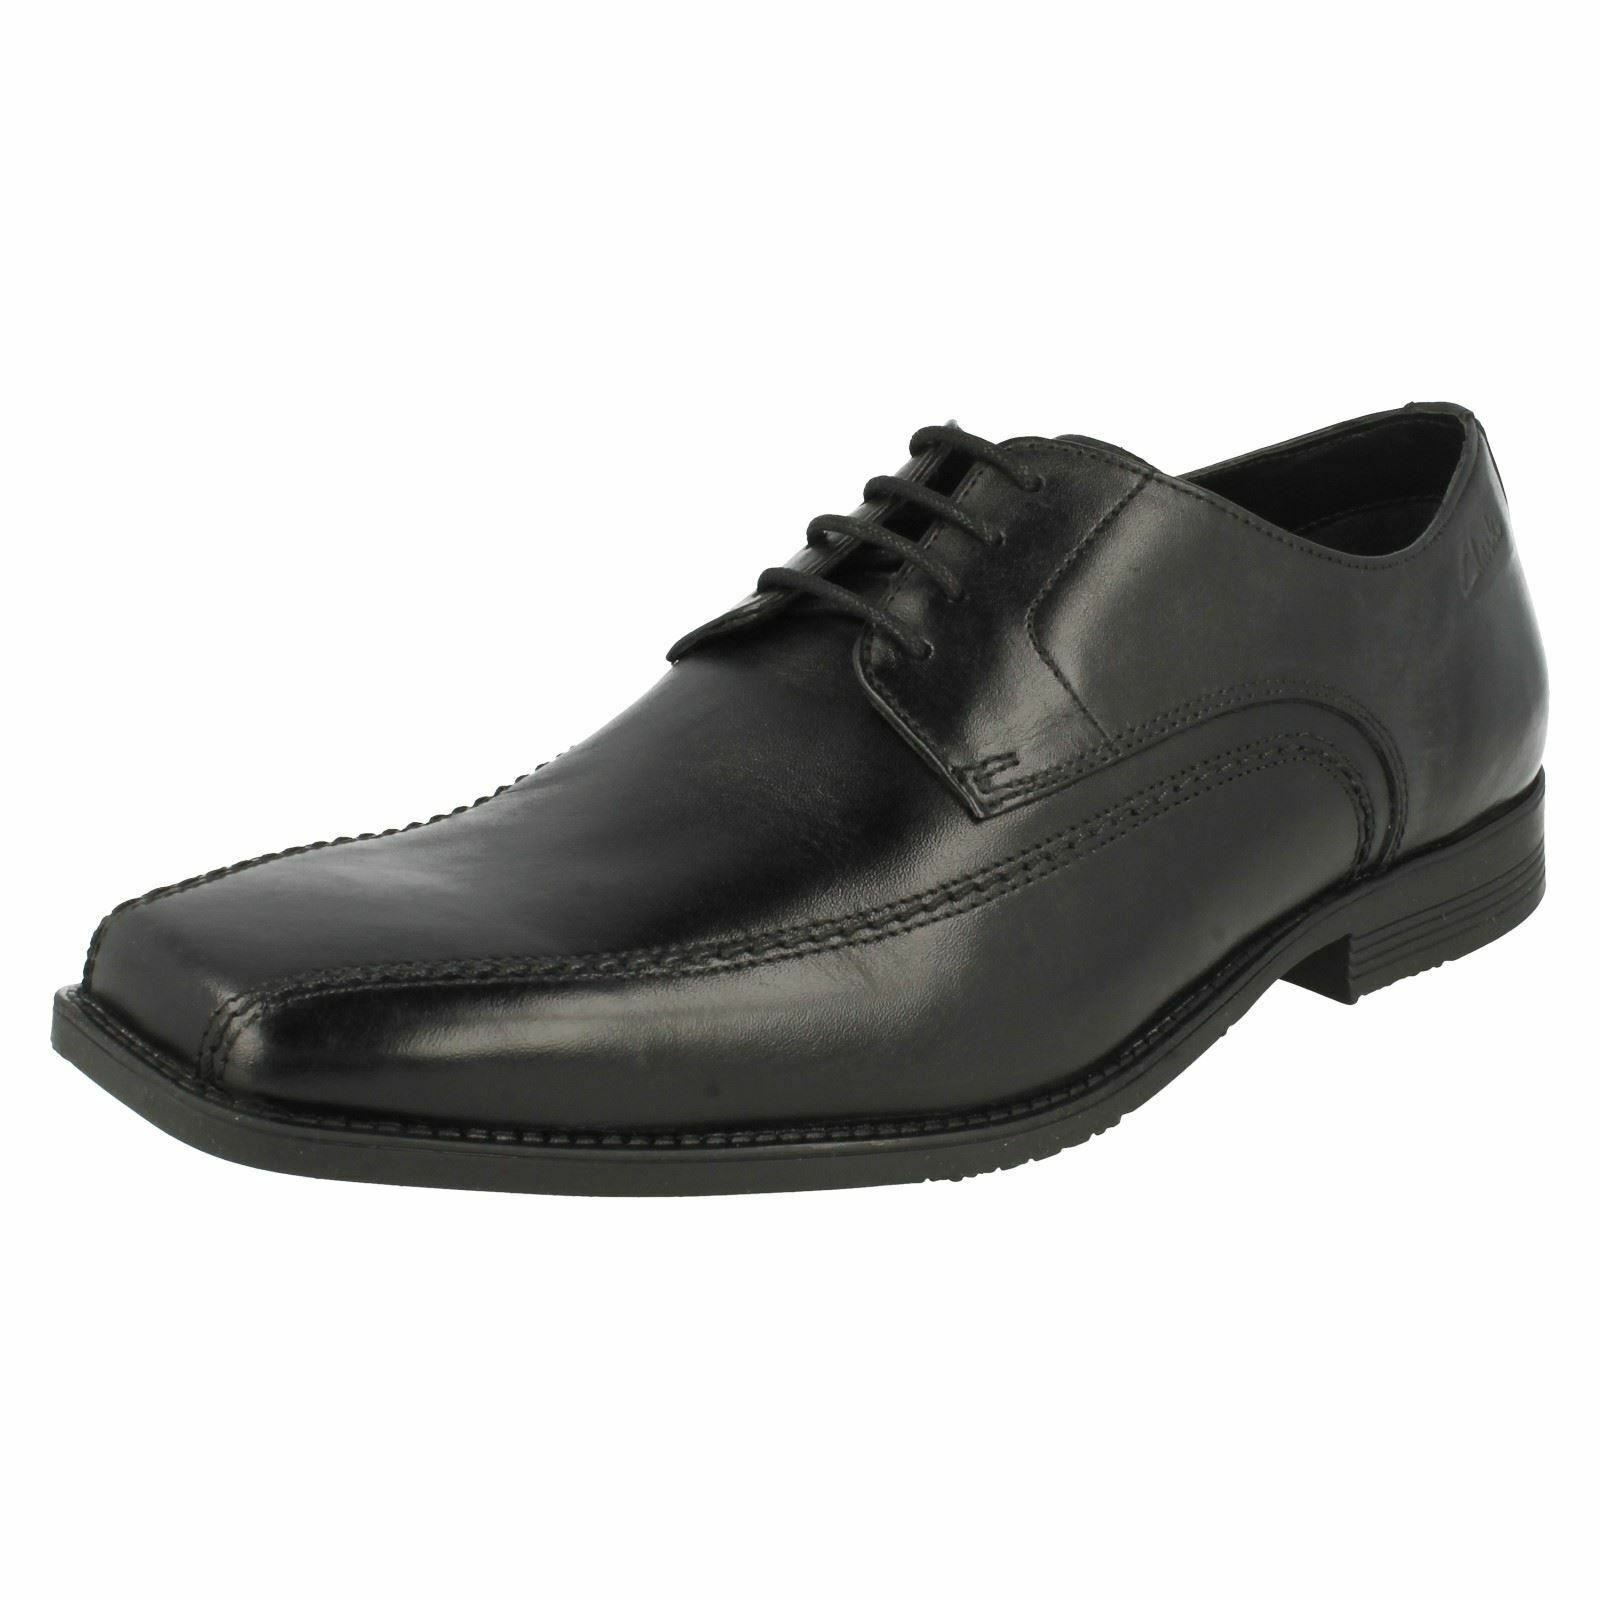 Homme Clarks FORMAL LACE UP chaussures Baker Dentelle